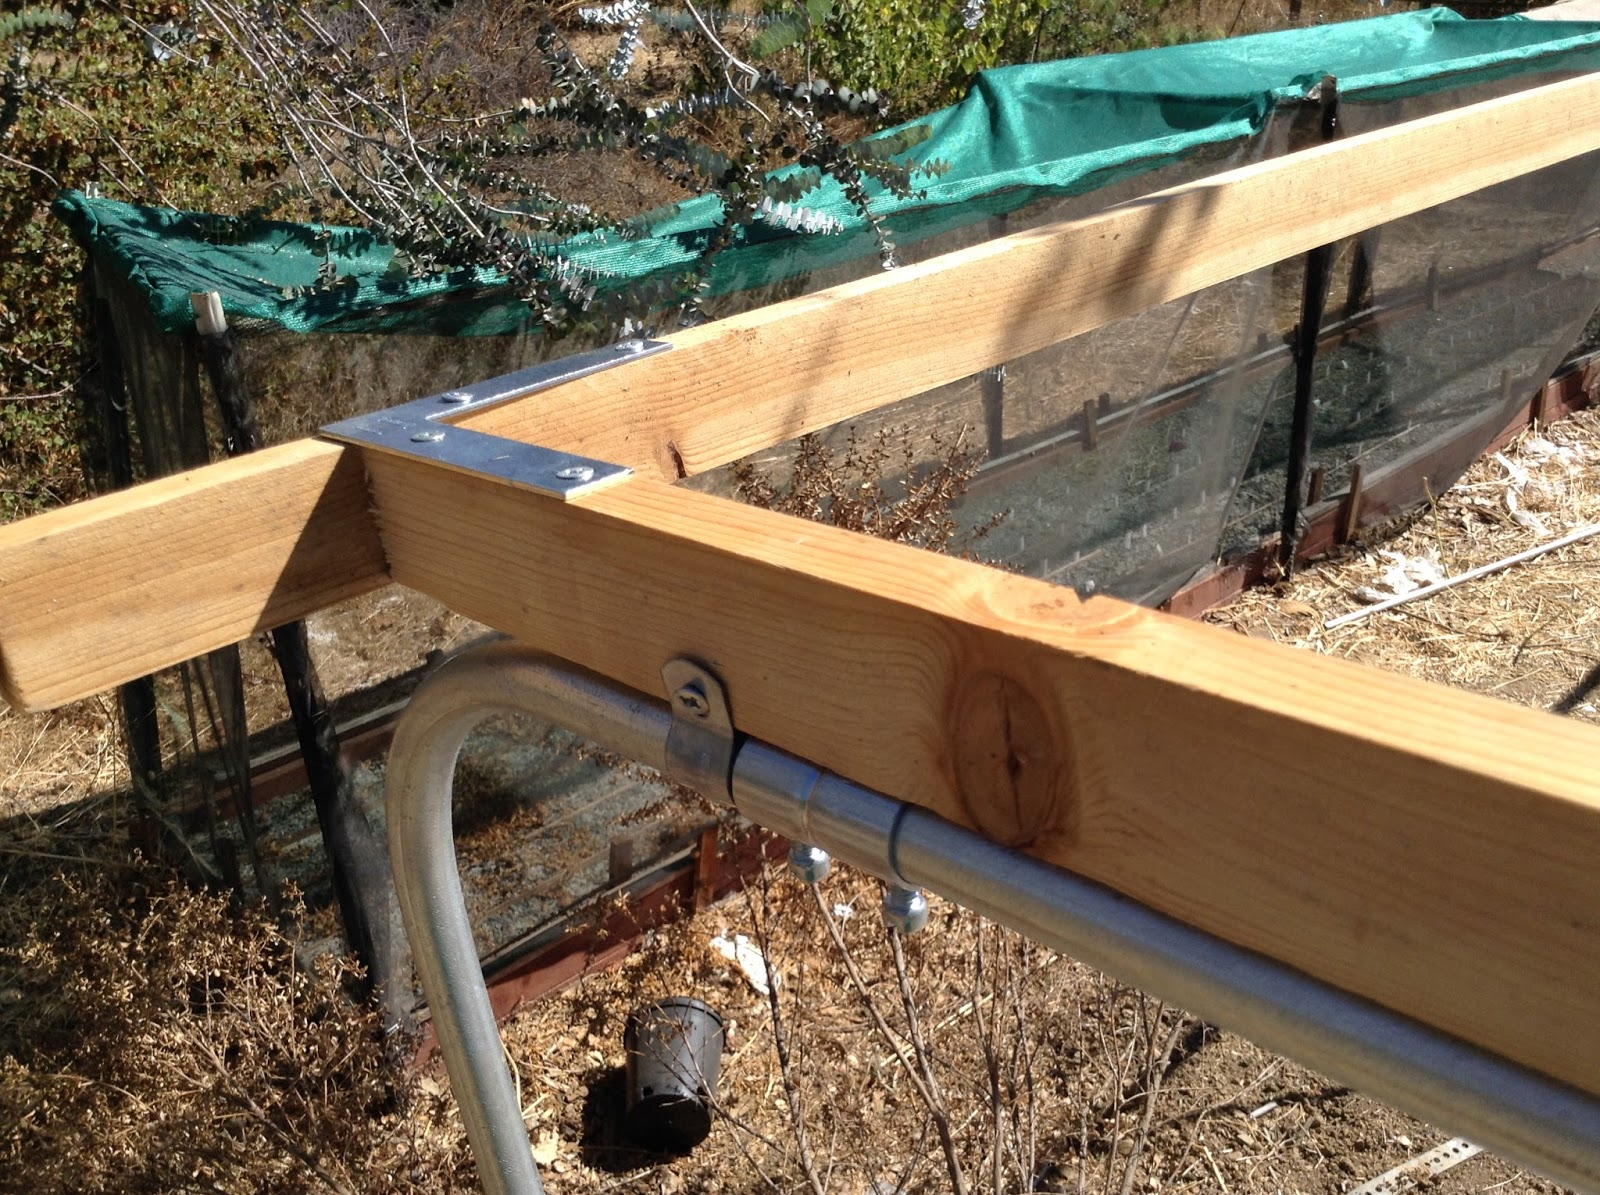 Growing Cool Plants: Building Raised Beds for Bulbs